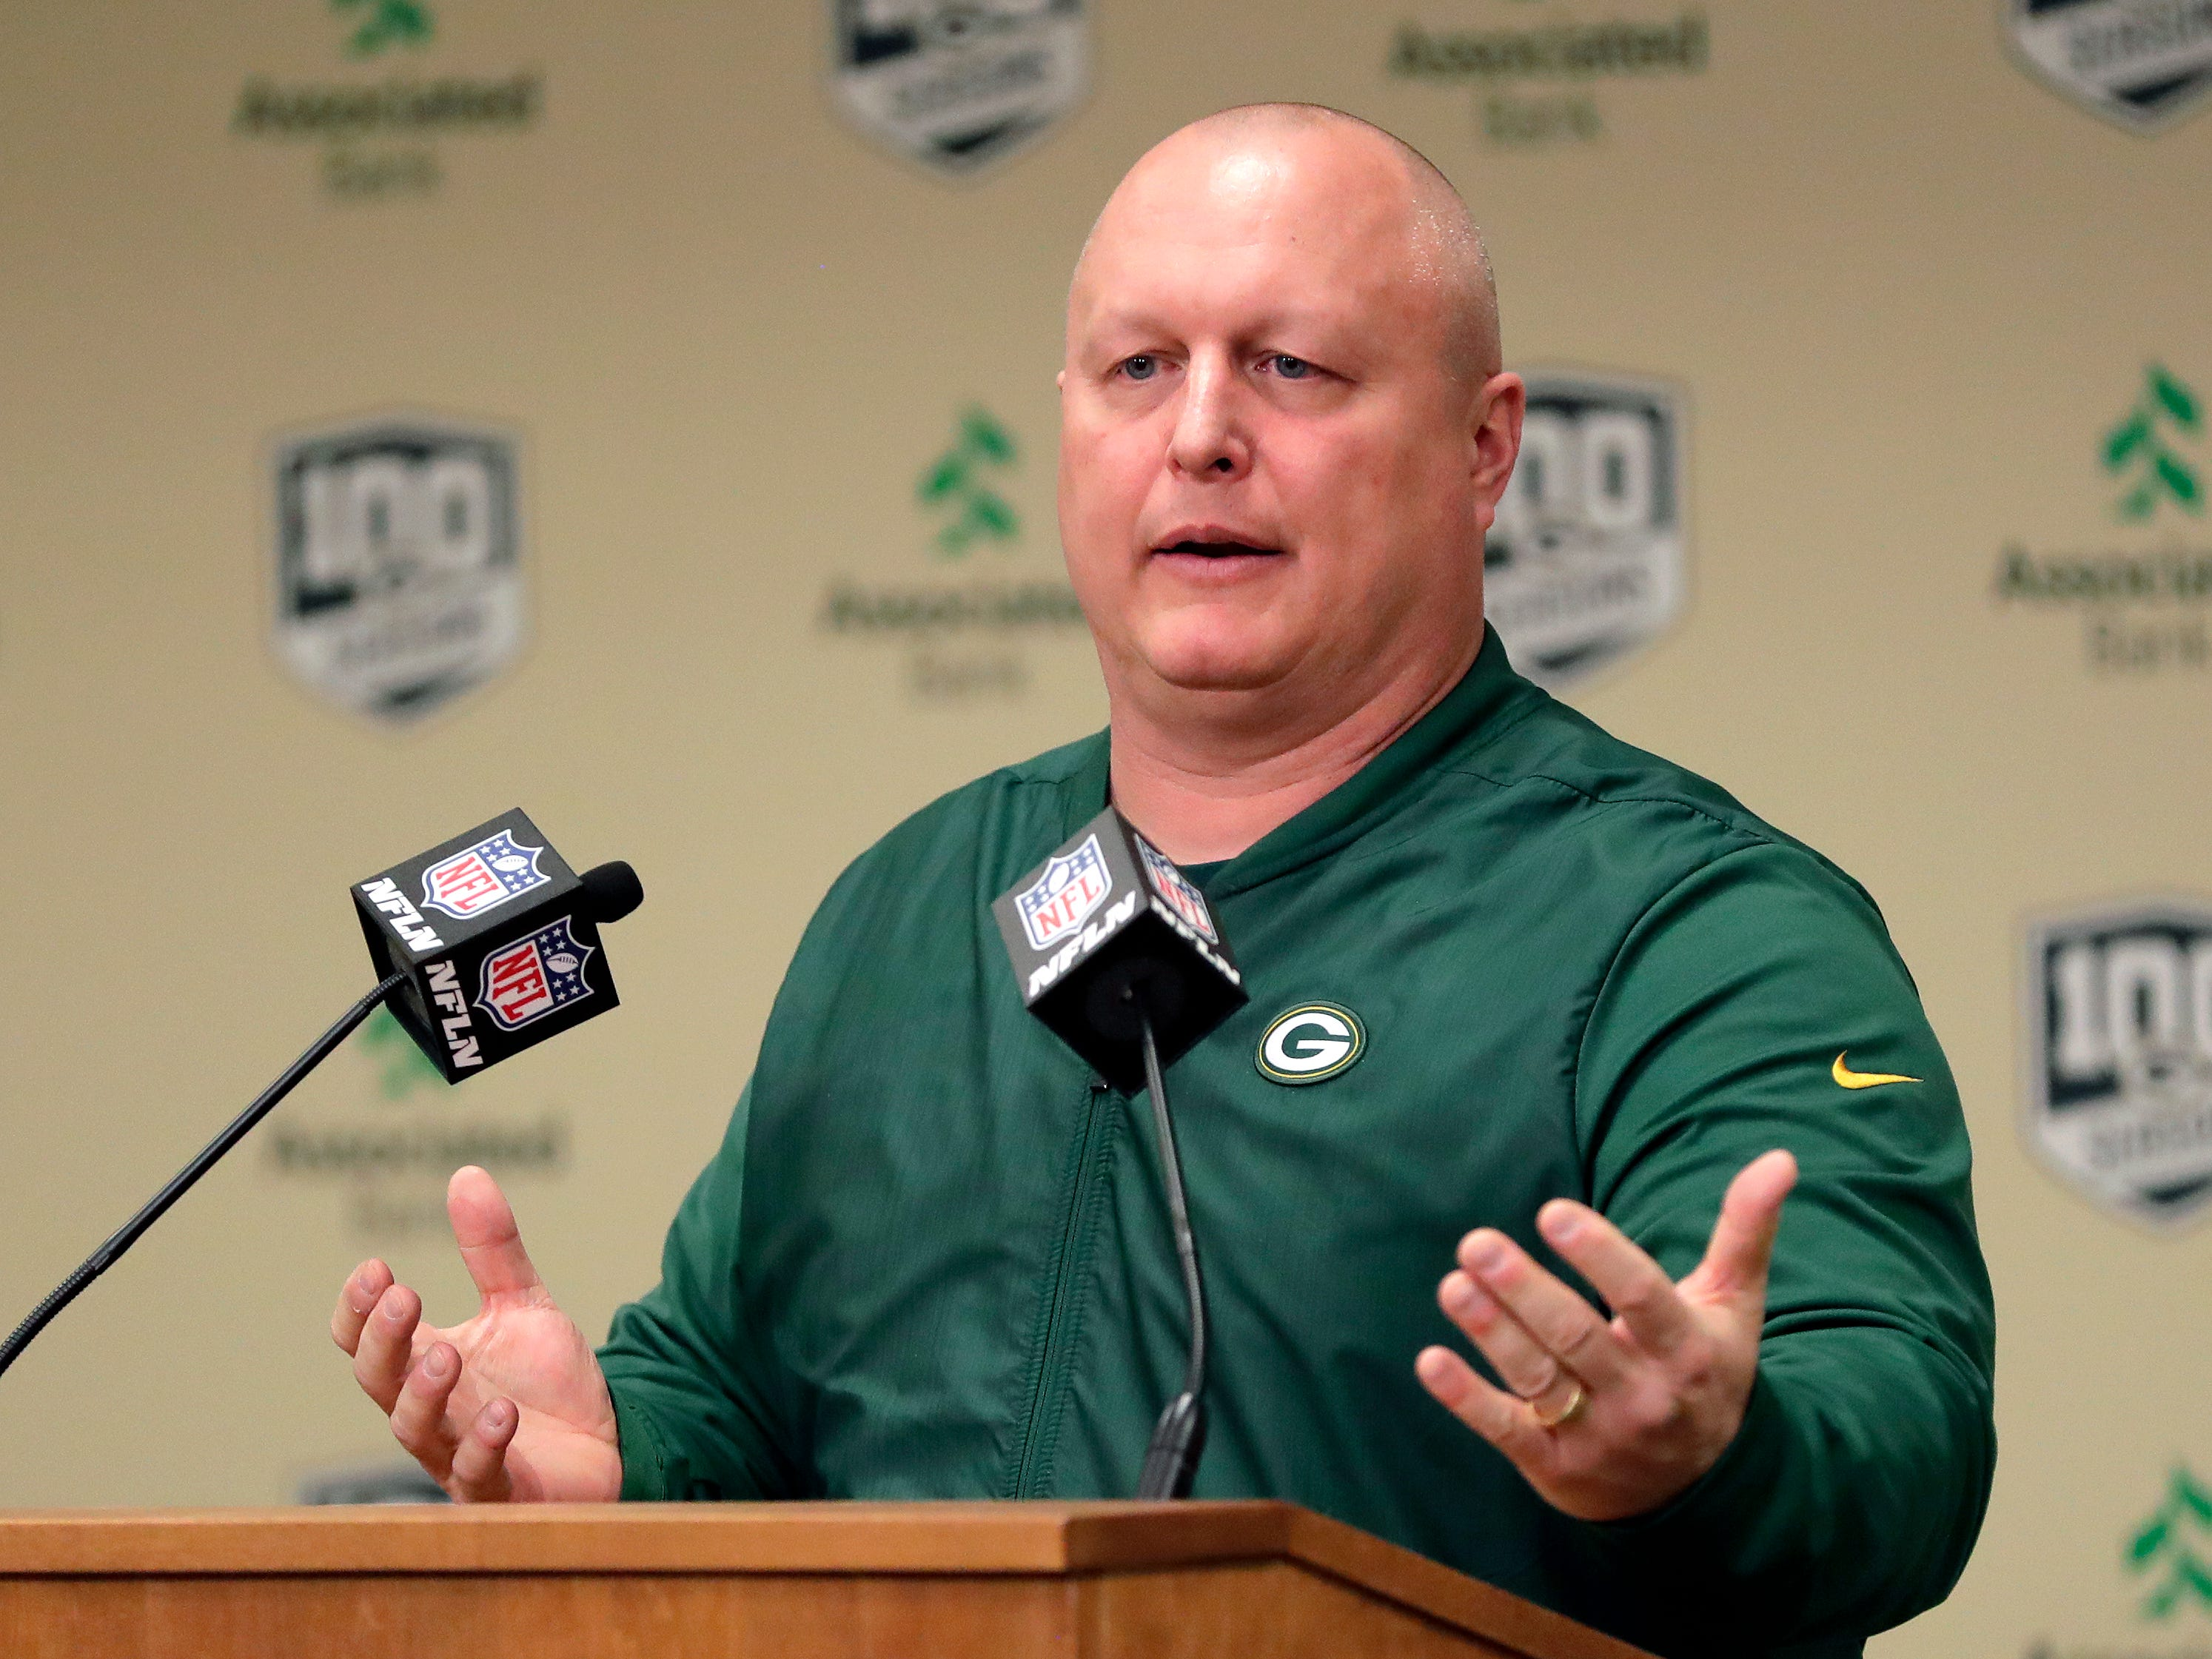 Shawn Mennenga, the Green Bay Packers' new special teams coordinator, speaks to media on Feb. 18, 2019 at Lambeau Field in Green Bay, Wis.